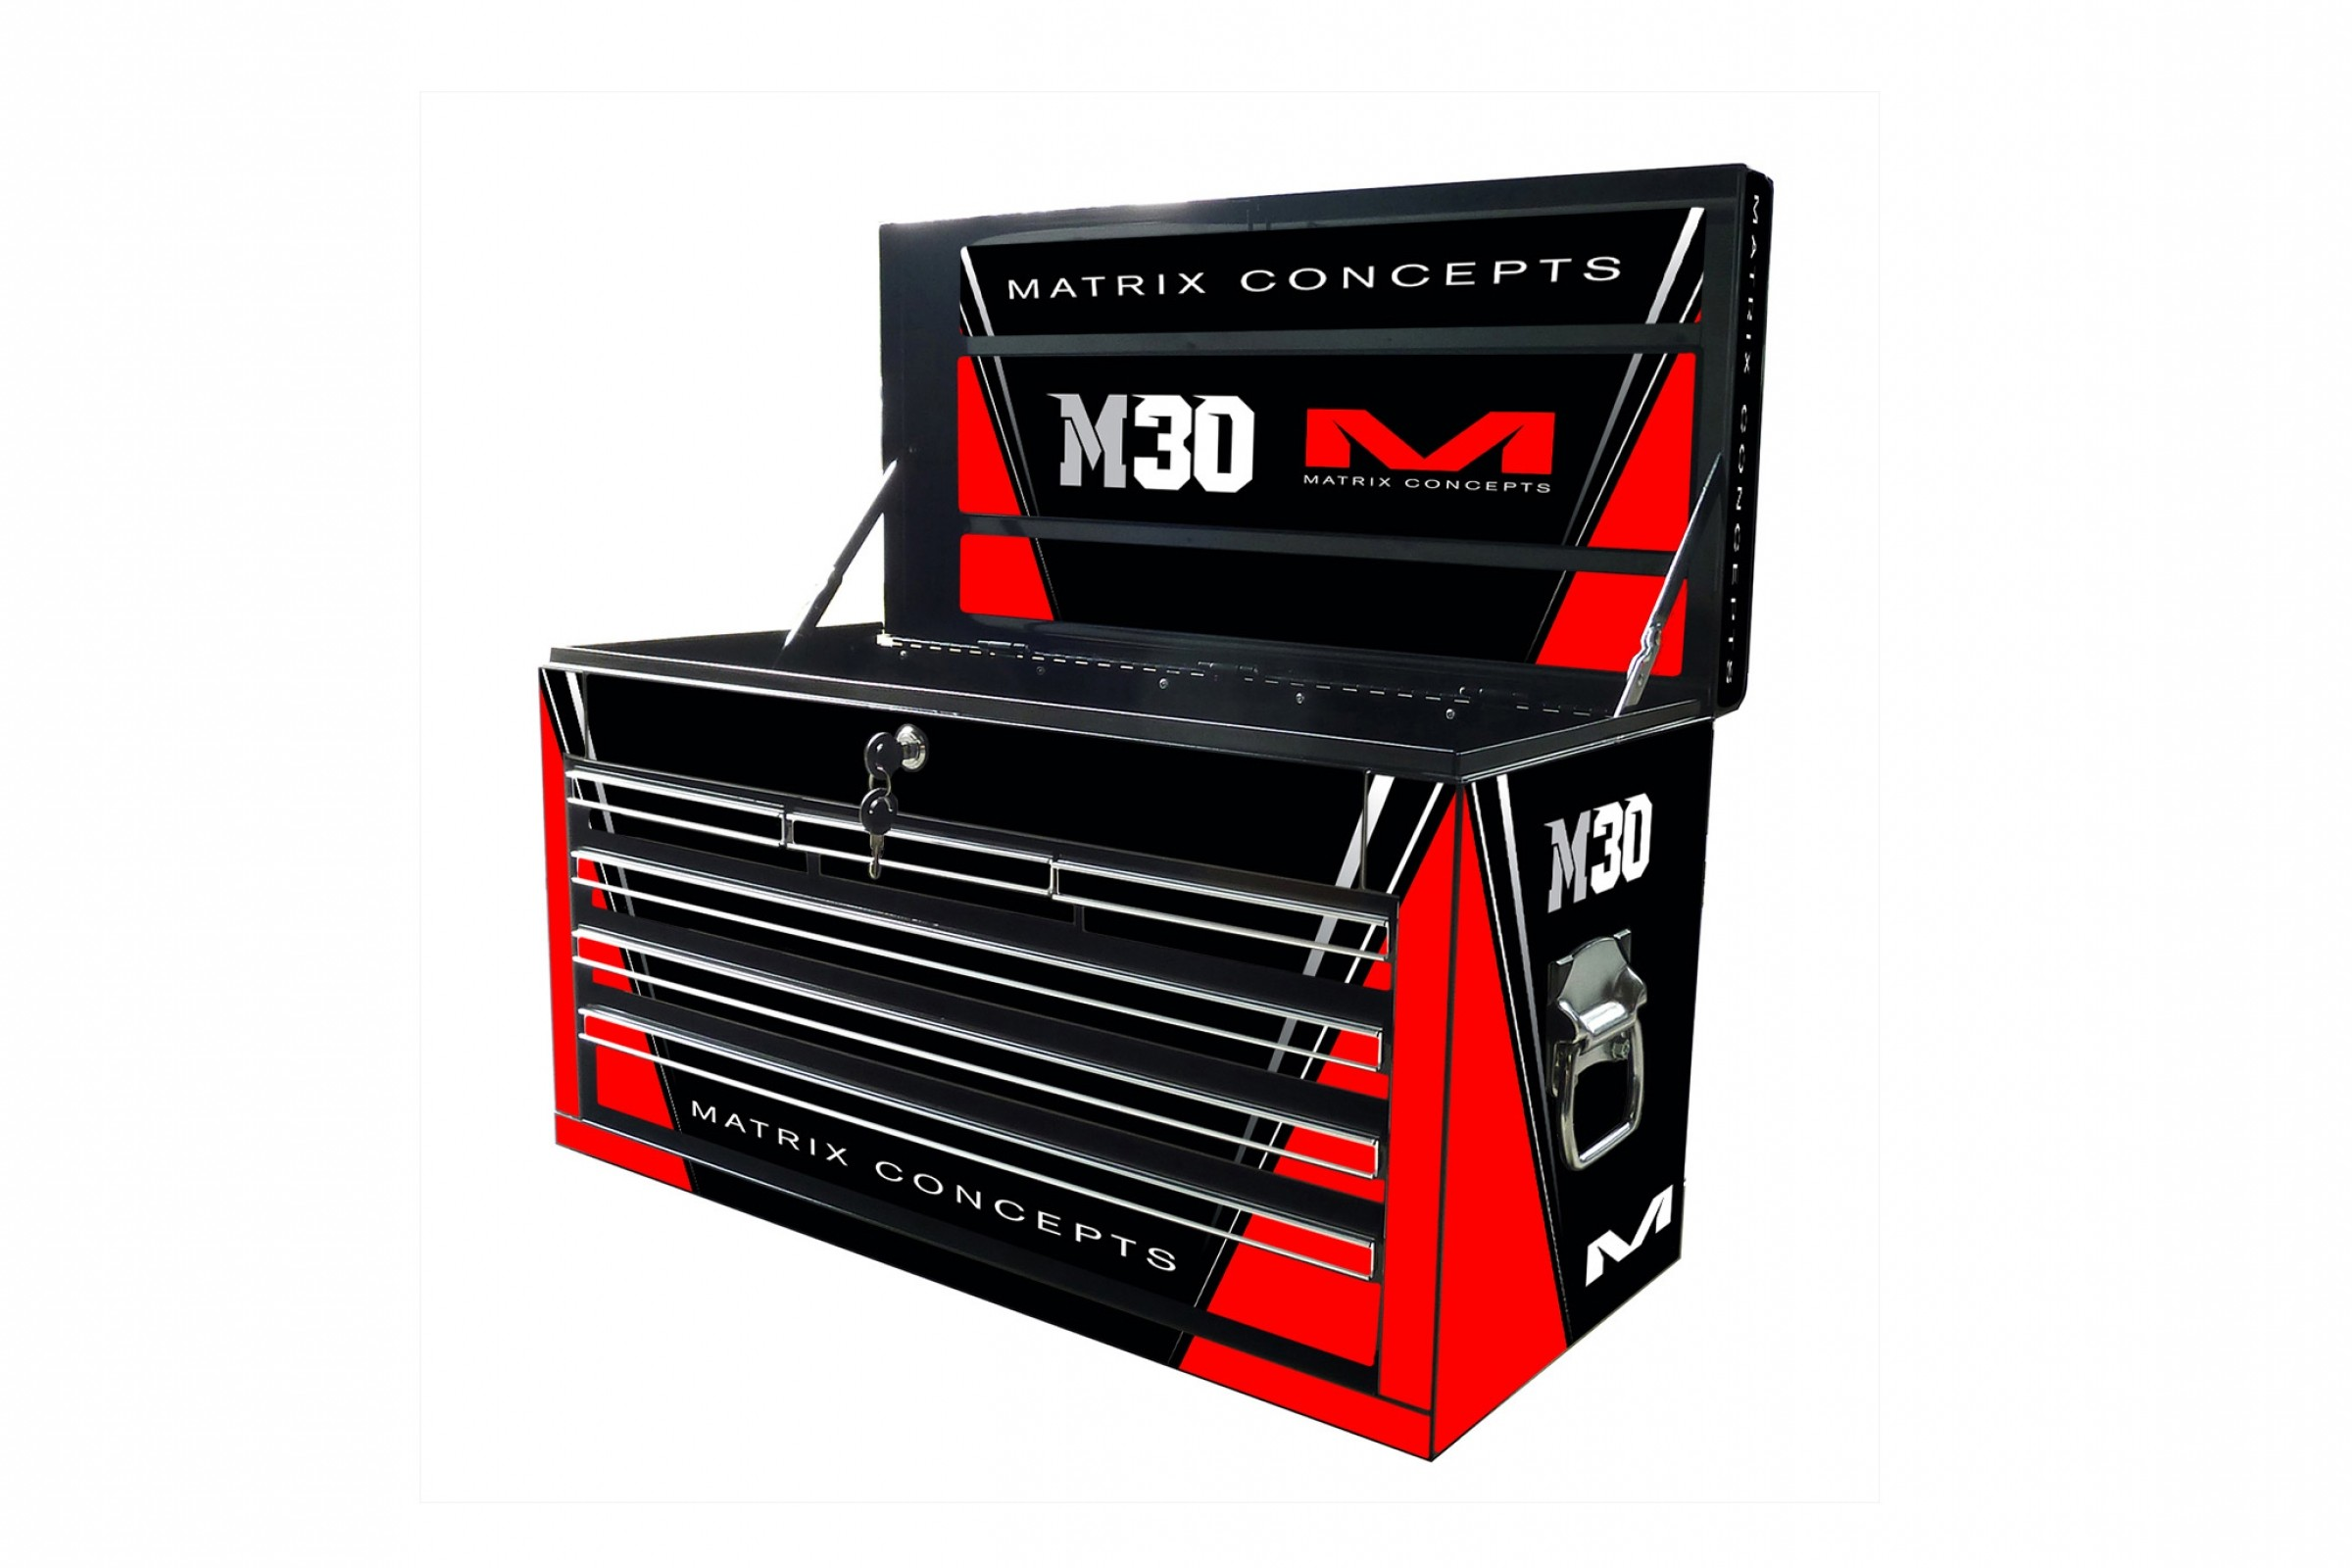 Matrix Concepts Launches M30 Toolbox